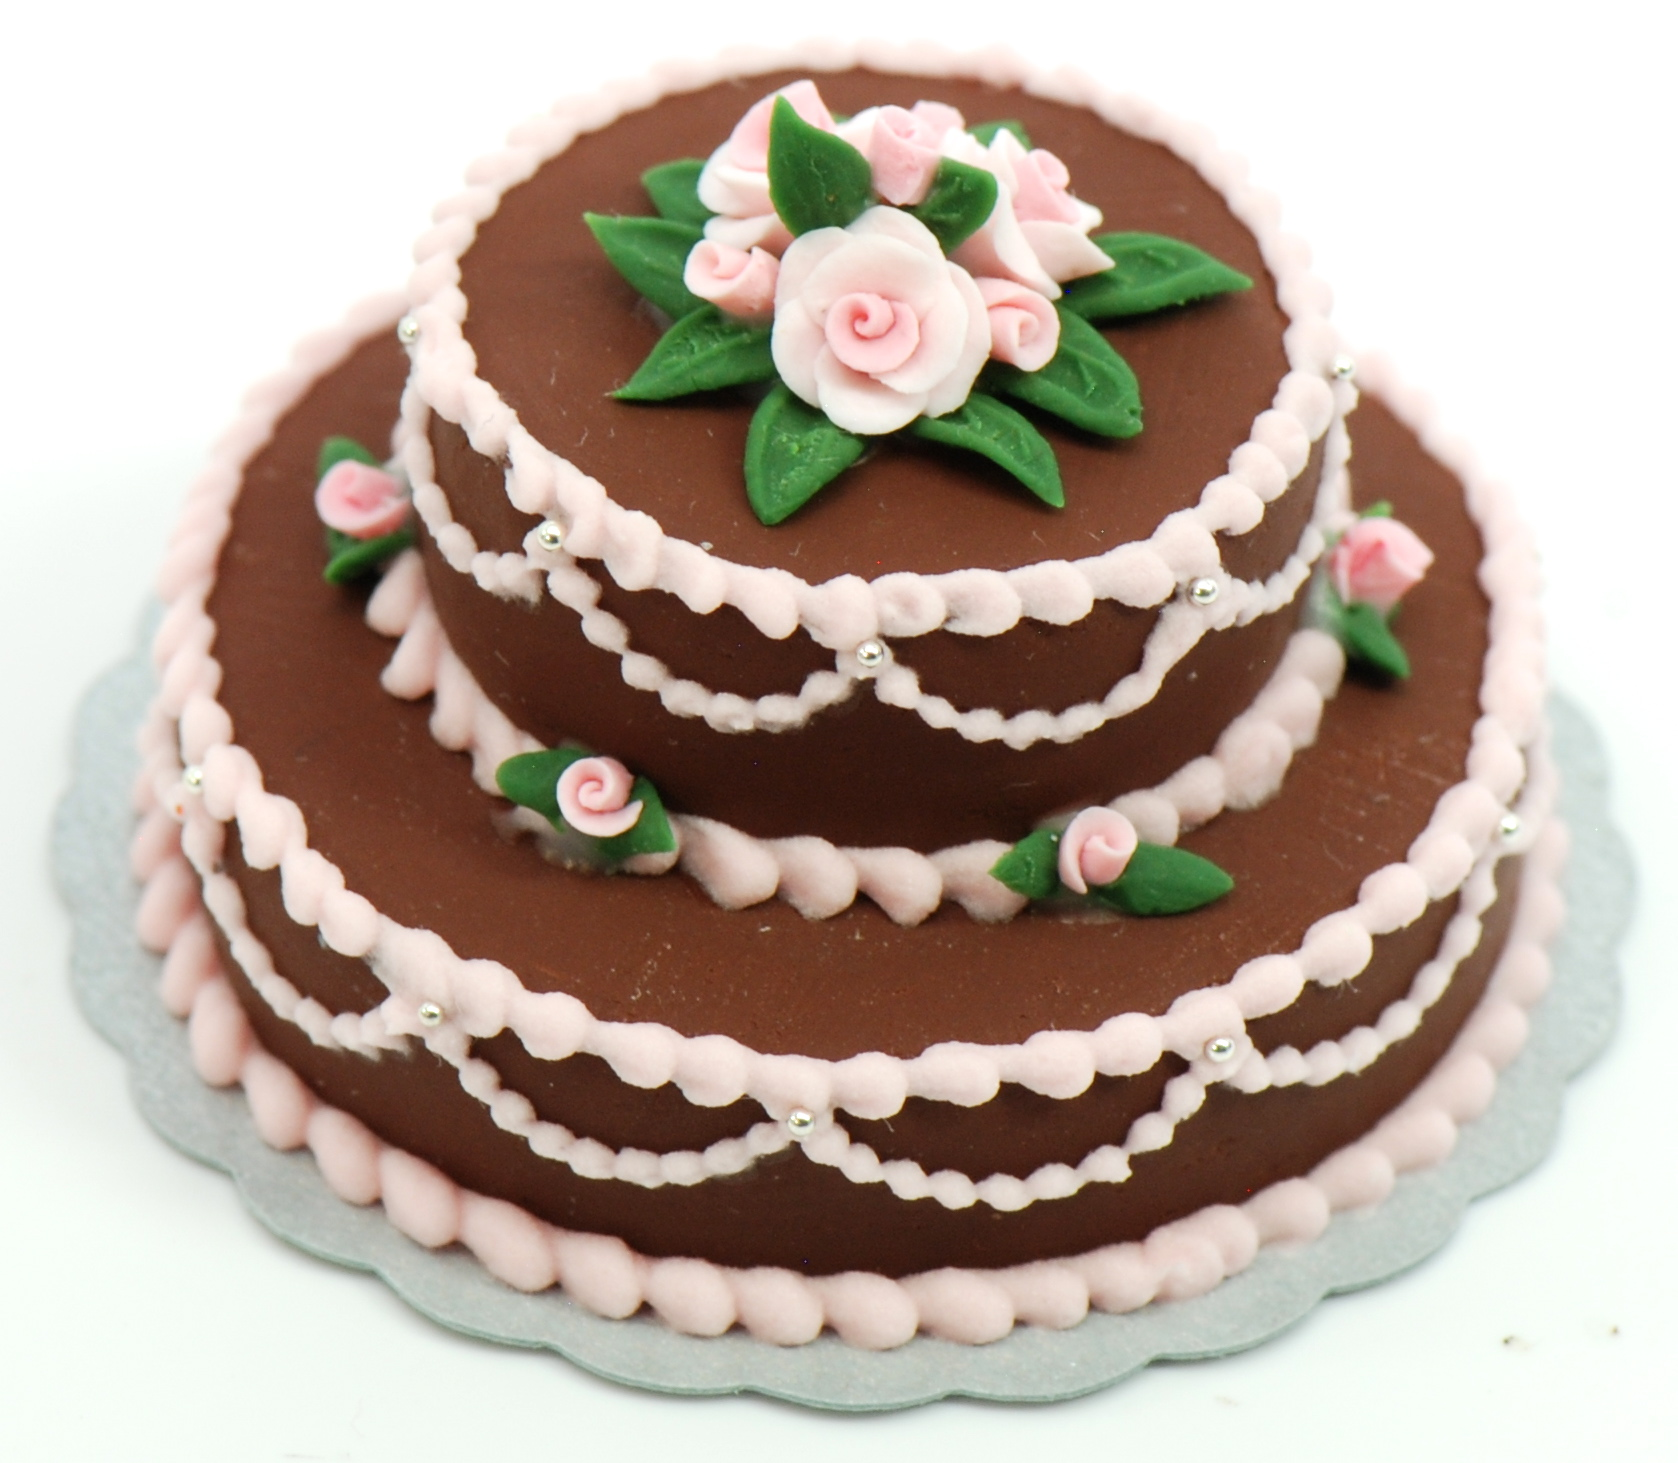 Minature Double Layer Chocolate Cake Wpink Roses